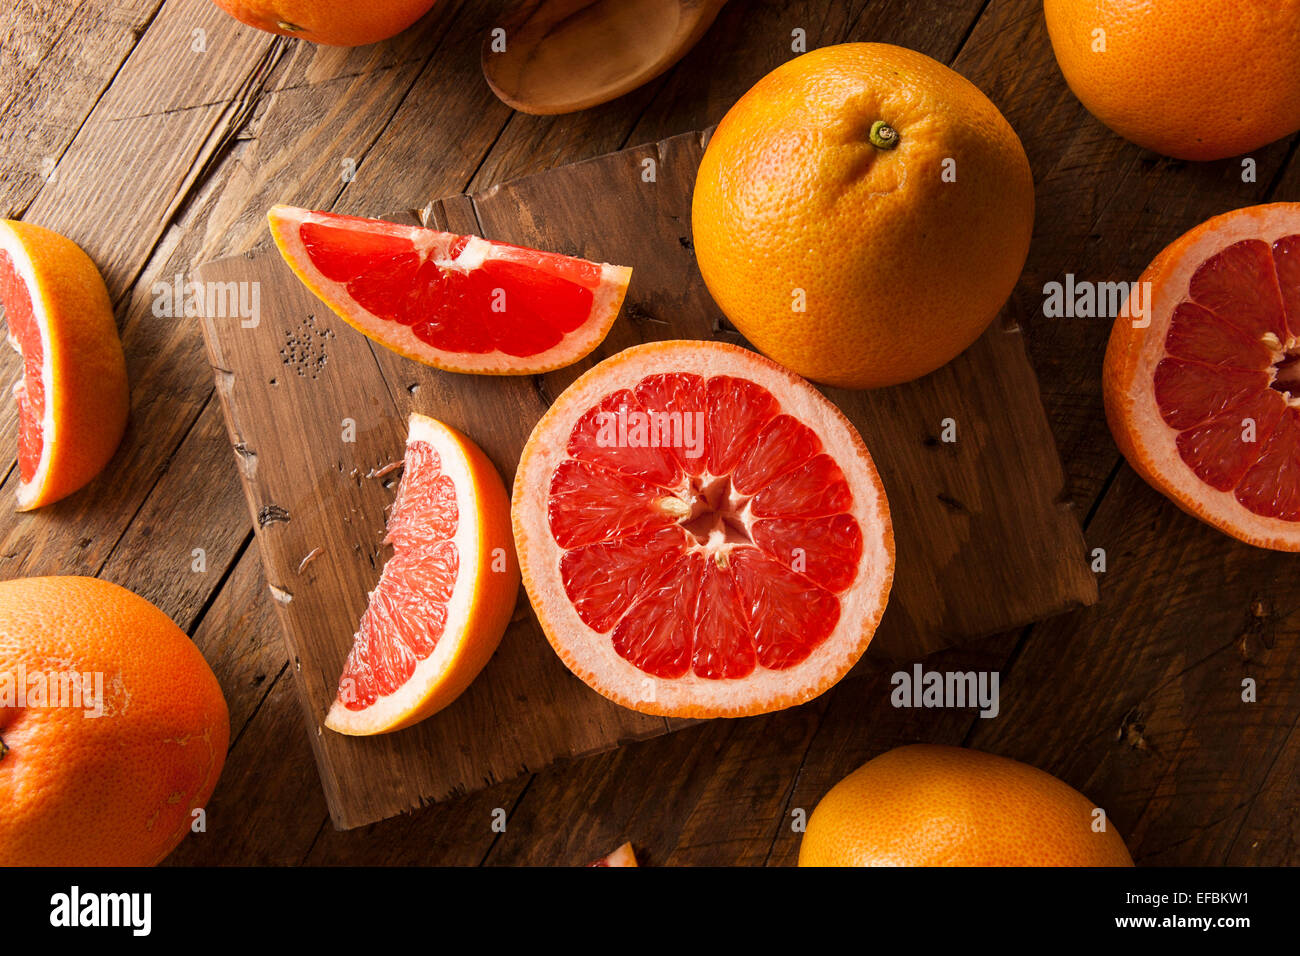 Healthy Organic Red Ruby Grapefruit on a Background - Stock Image